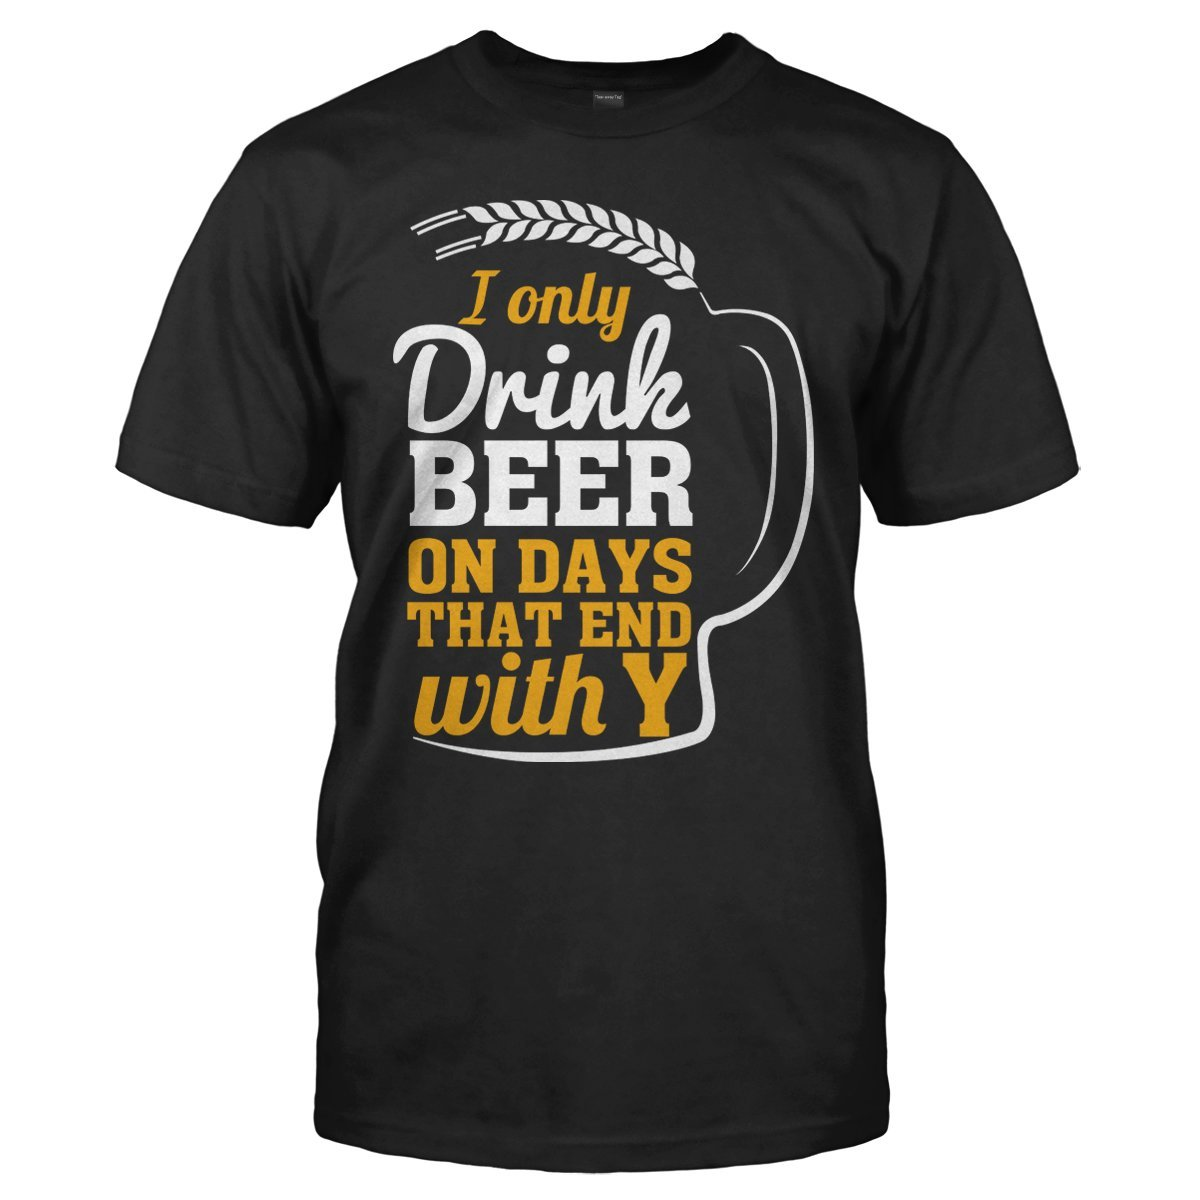 I Only Drink Beer On Days That End With Y - T Shirt